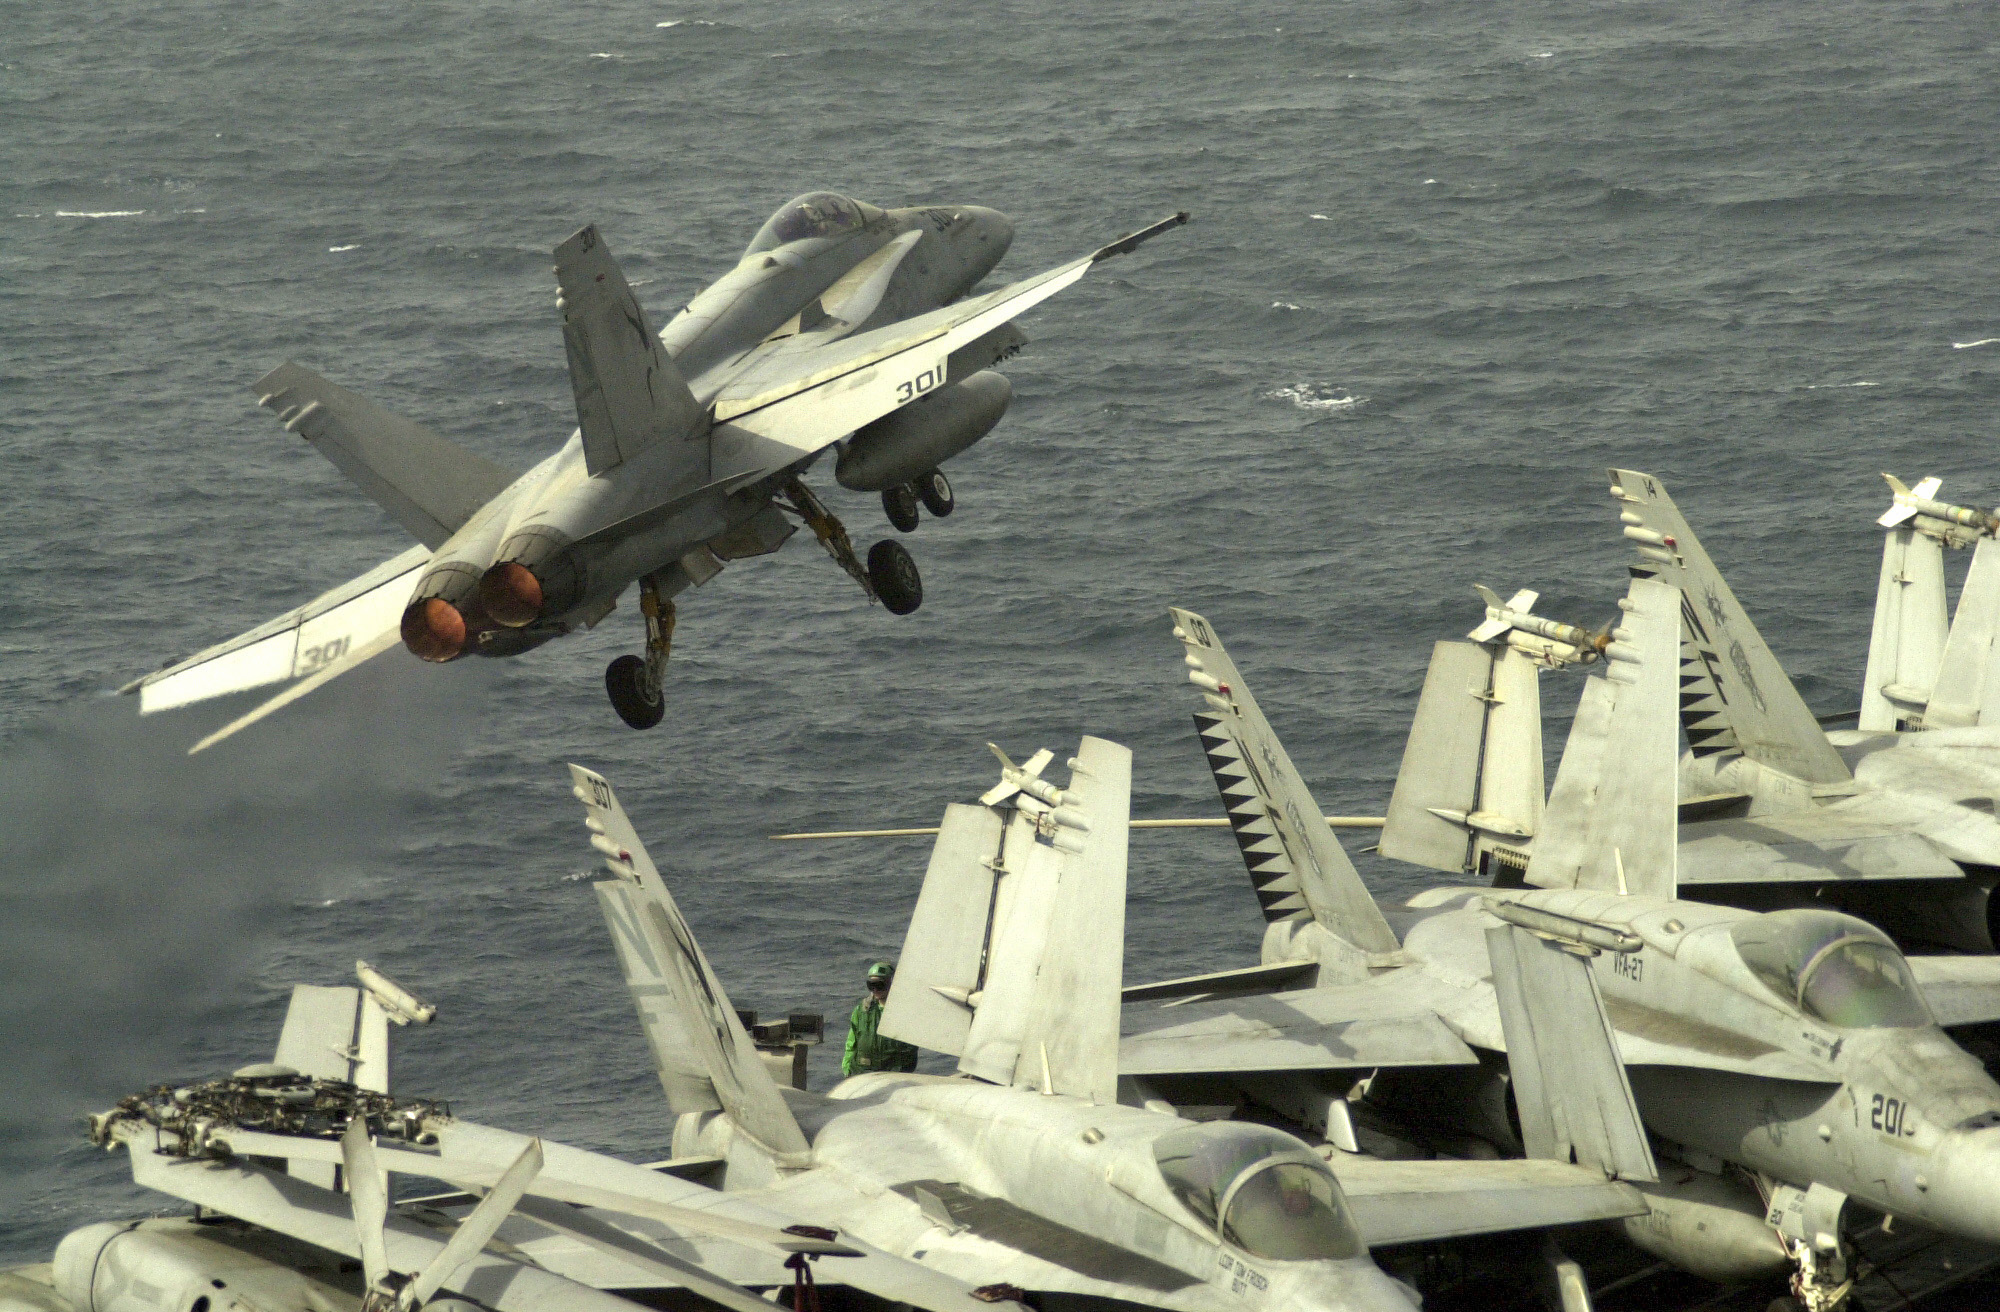 ABOARD THE USS KITTY HAWK - MARCH 20, 2003 - Loaded with missiles and bombs, an F/A-18 Hornet from Strike Fighter Squadron 192 catapults off the aircraft carrier Kitty Hawk during an early afternoon launch. Eight Hornets, including some from VFA-192 and two F-14 Tomcats from Fighter Squadron 154, flying off the Kitty Hawk hit targets in southeastern Iraq March 19 in response to Iraqi provocation. Still flying under